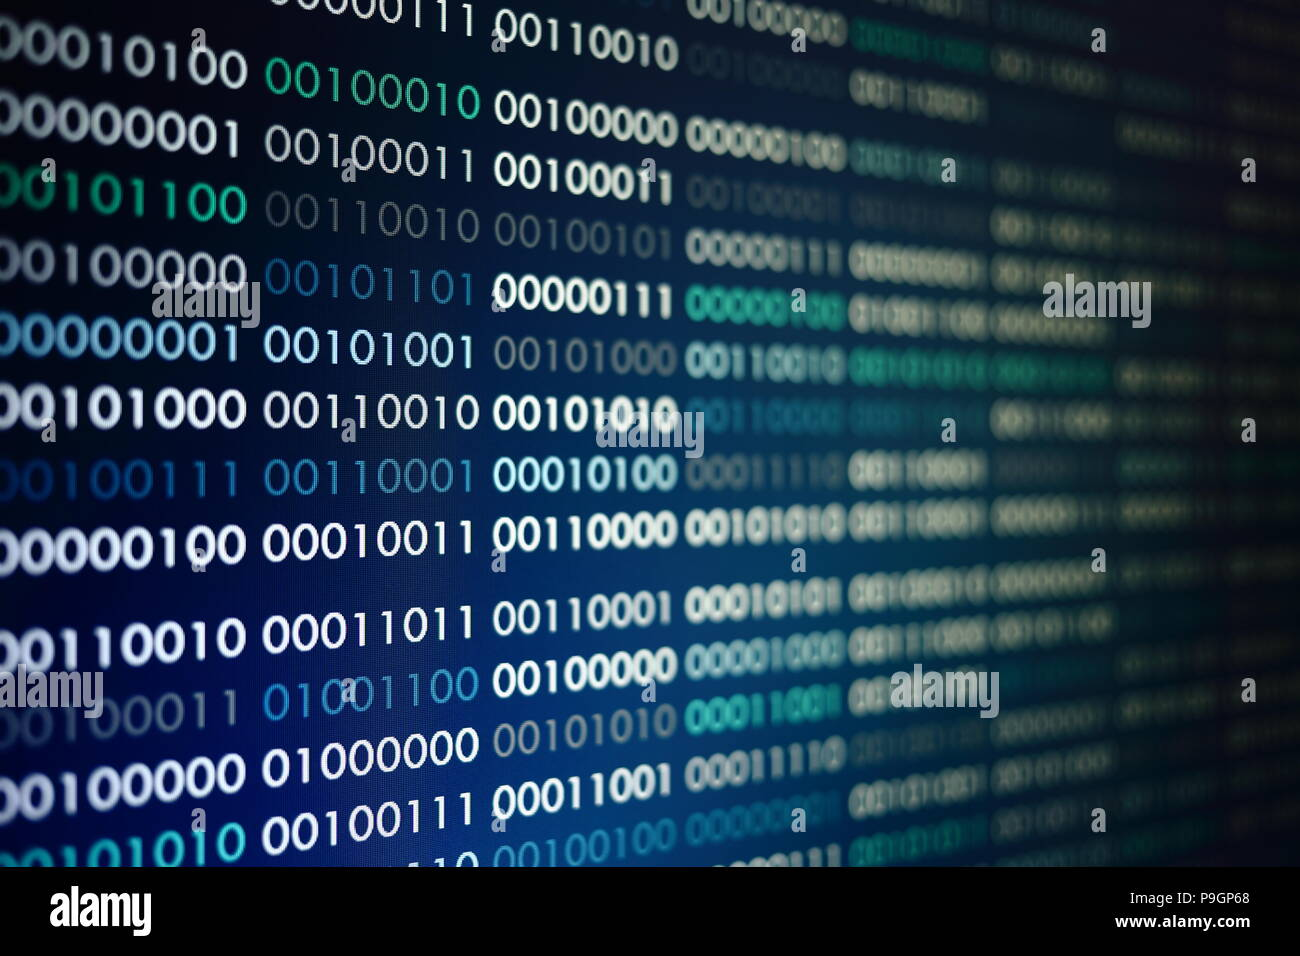 blue screen binary code. big data concepts working in cyberspace environment. data transfer going well - Stock Image